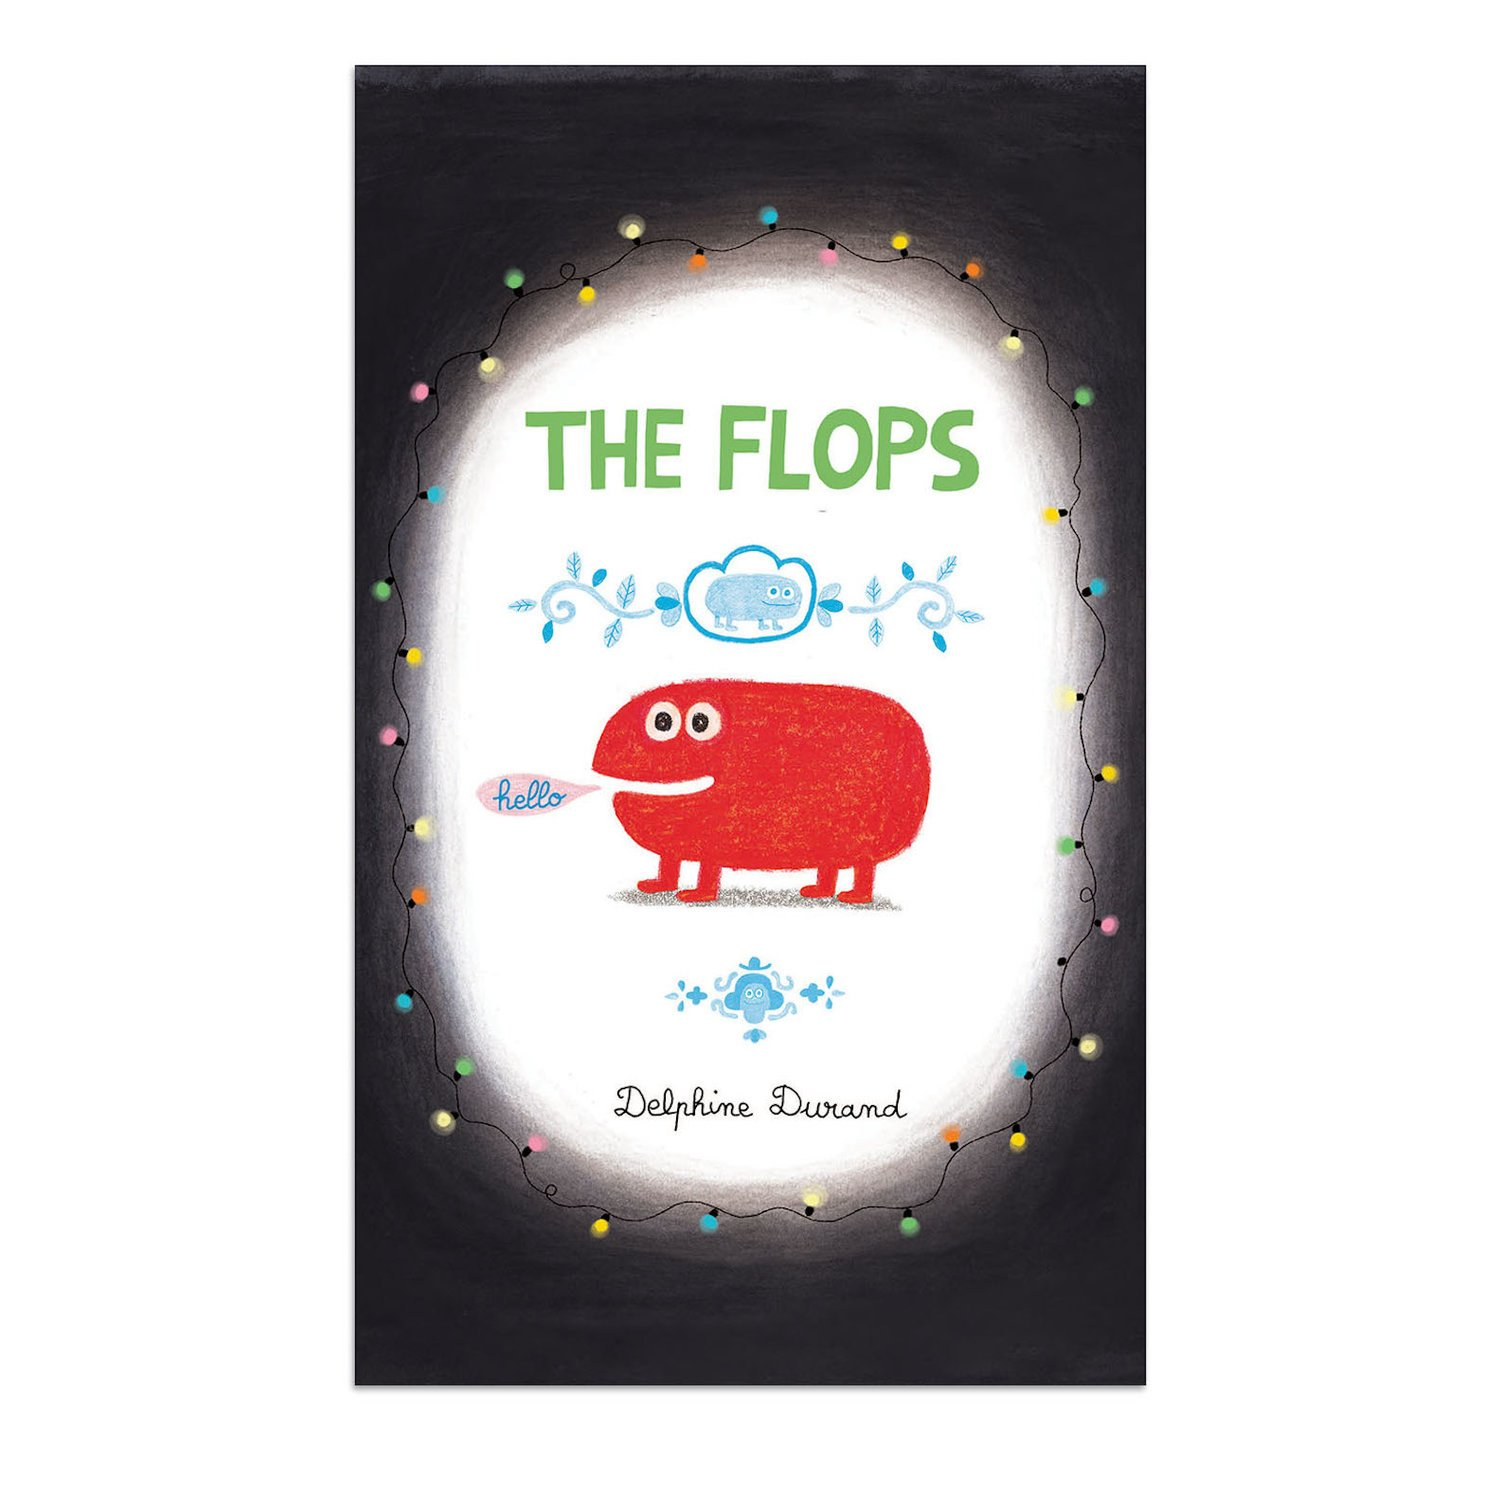 The Flops by Delphine Howard